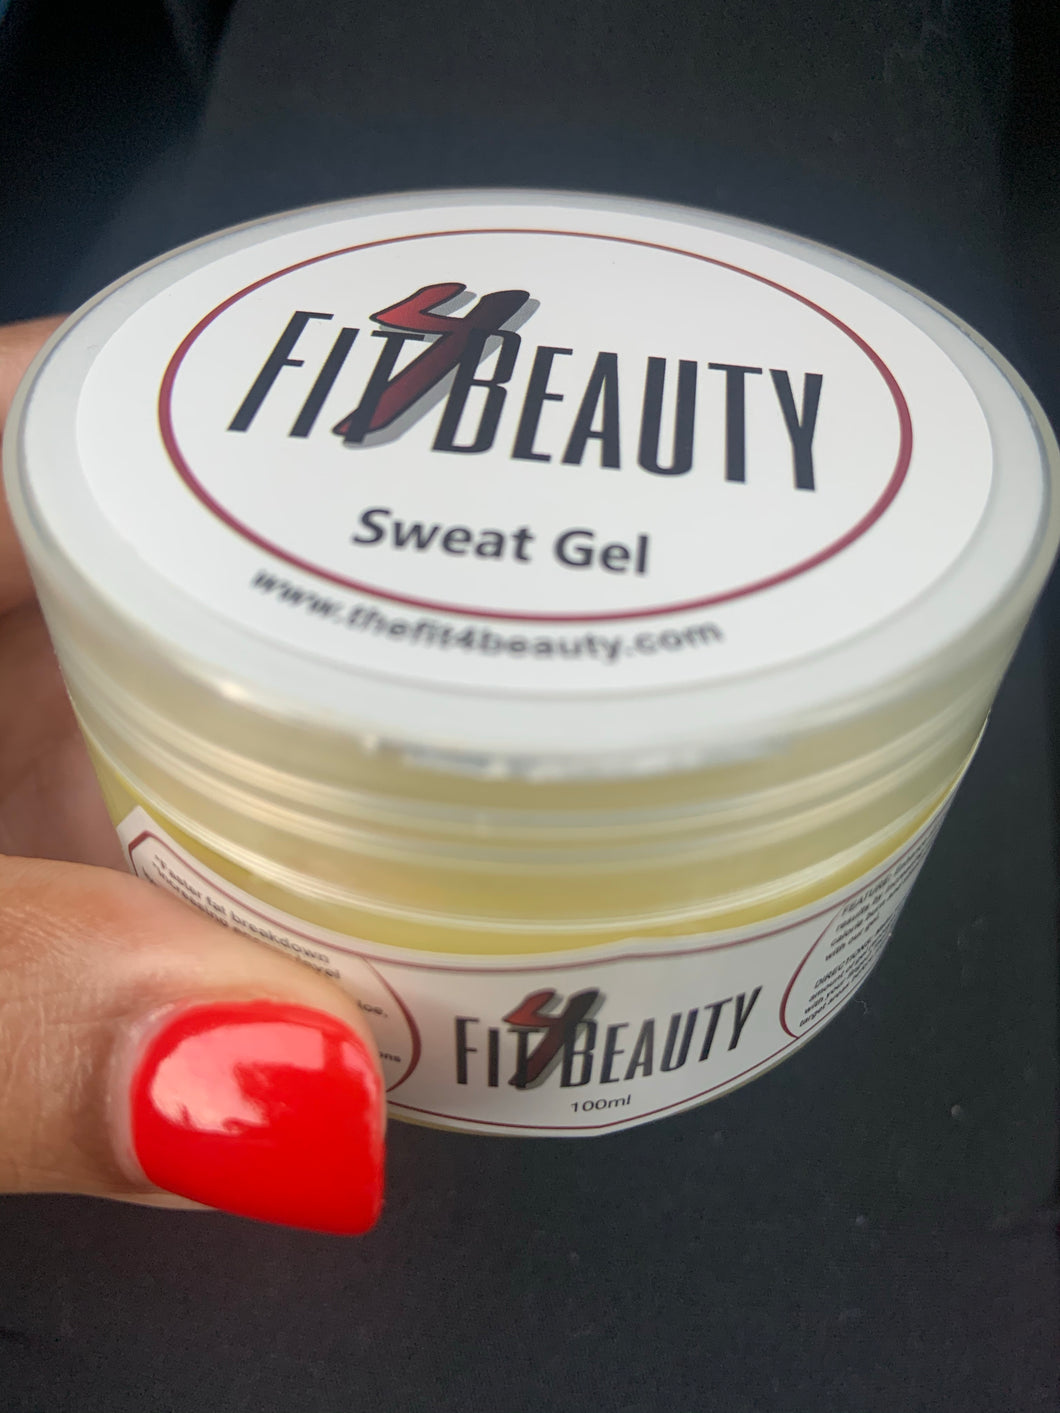 Fit4beauty Sweat Gel